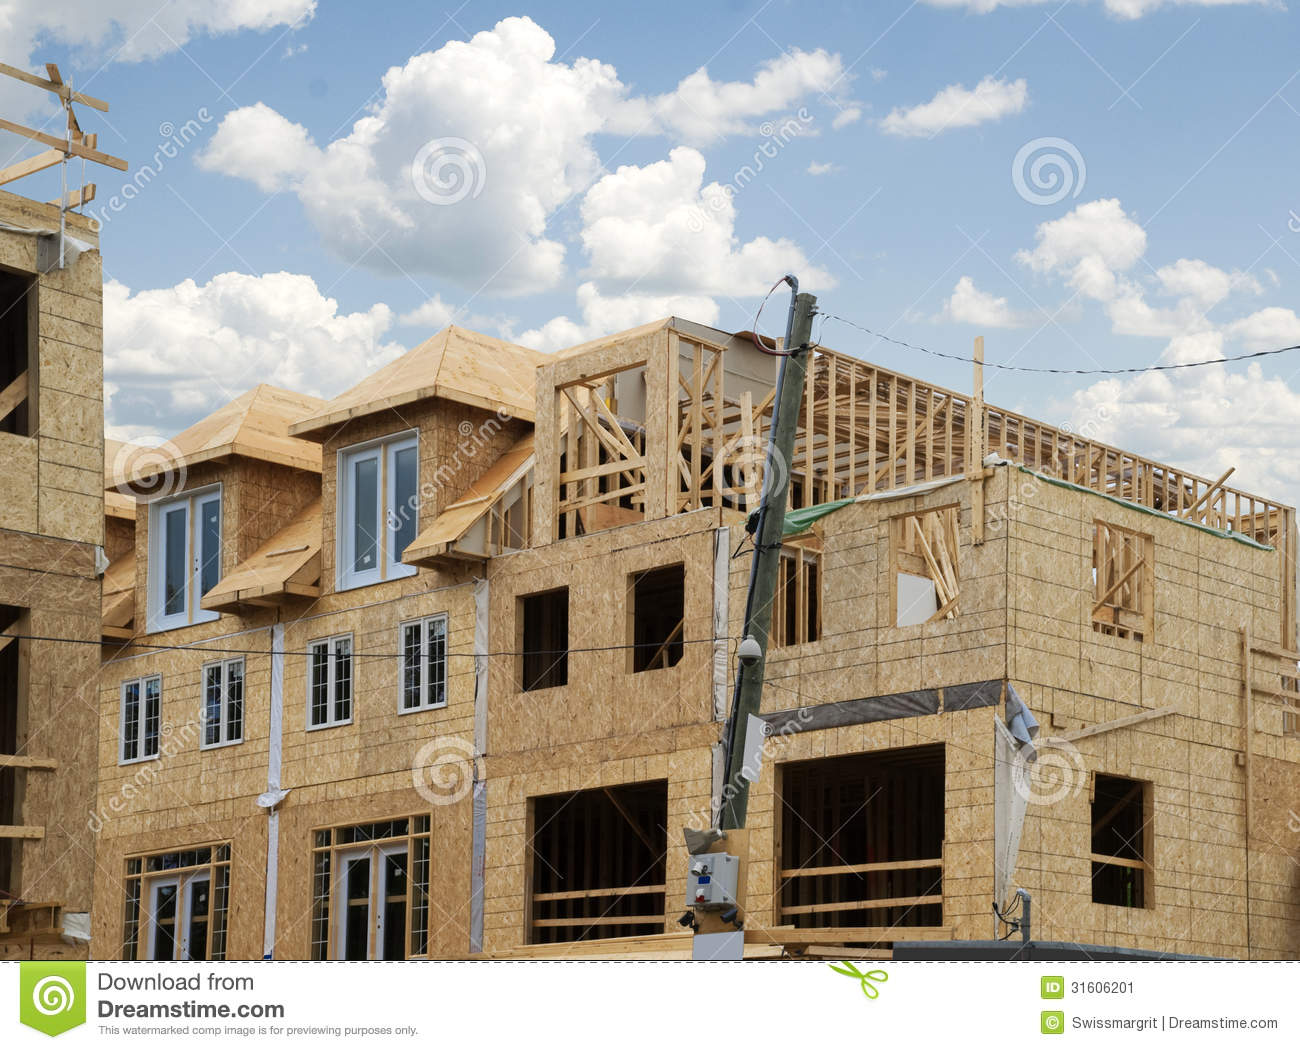 Building new townhouses stock image image 31606201 for House building website